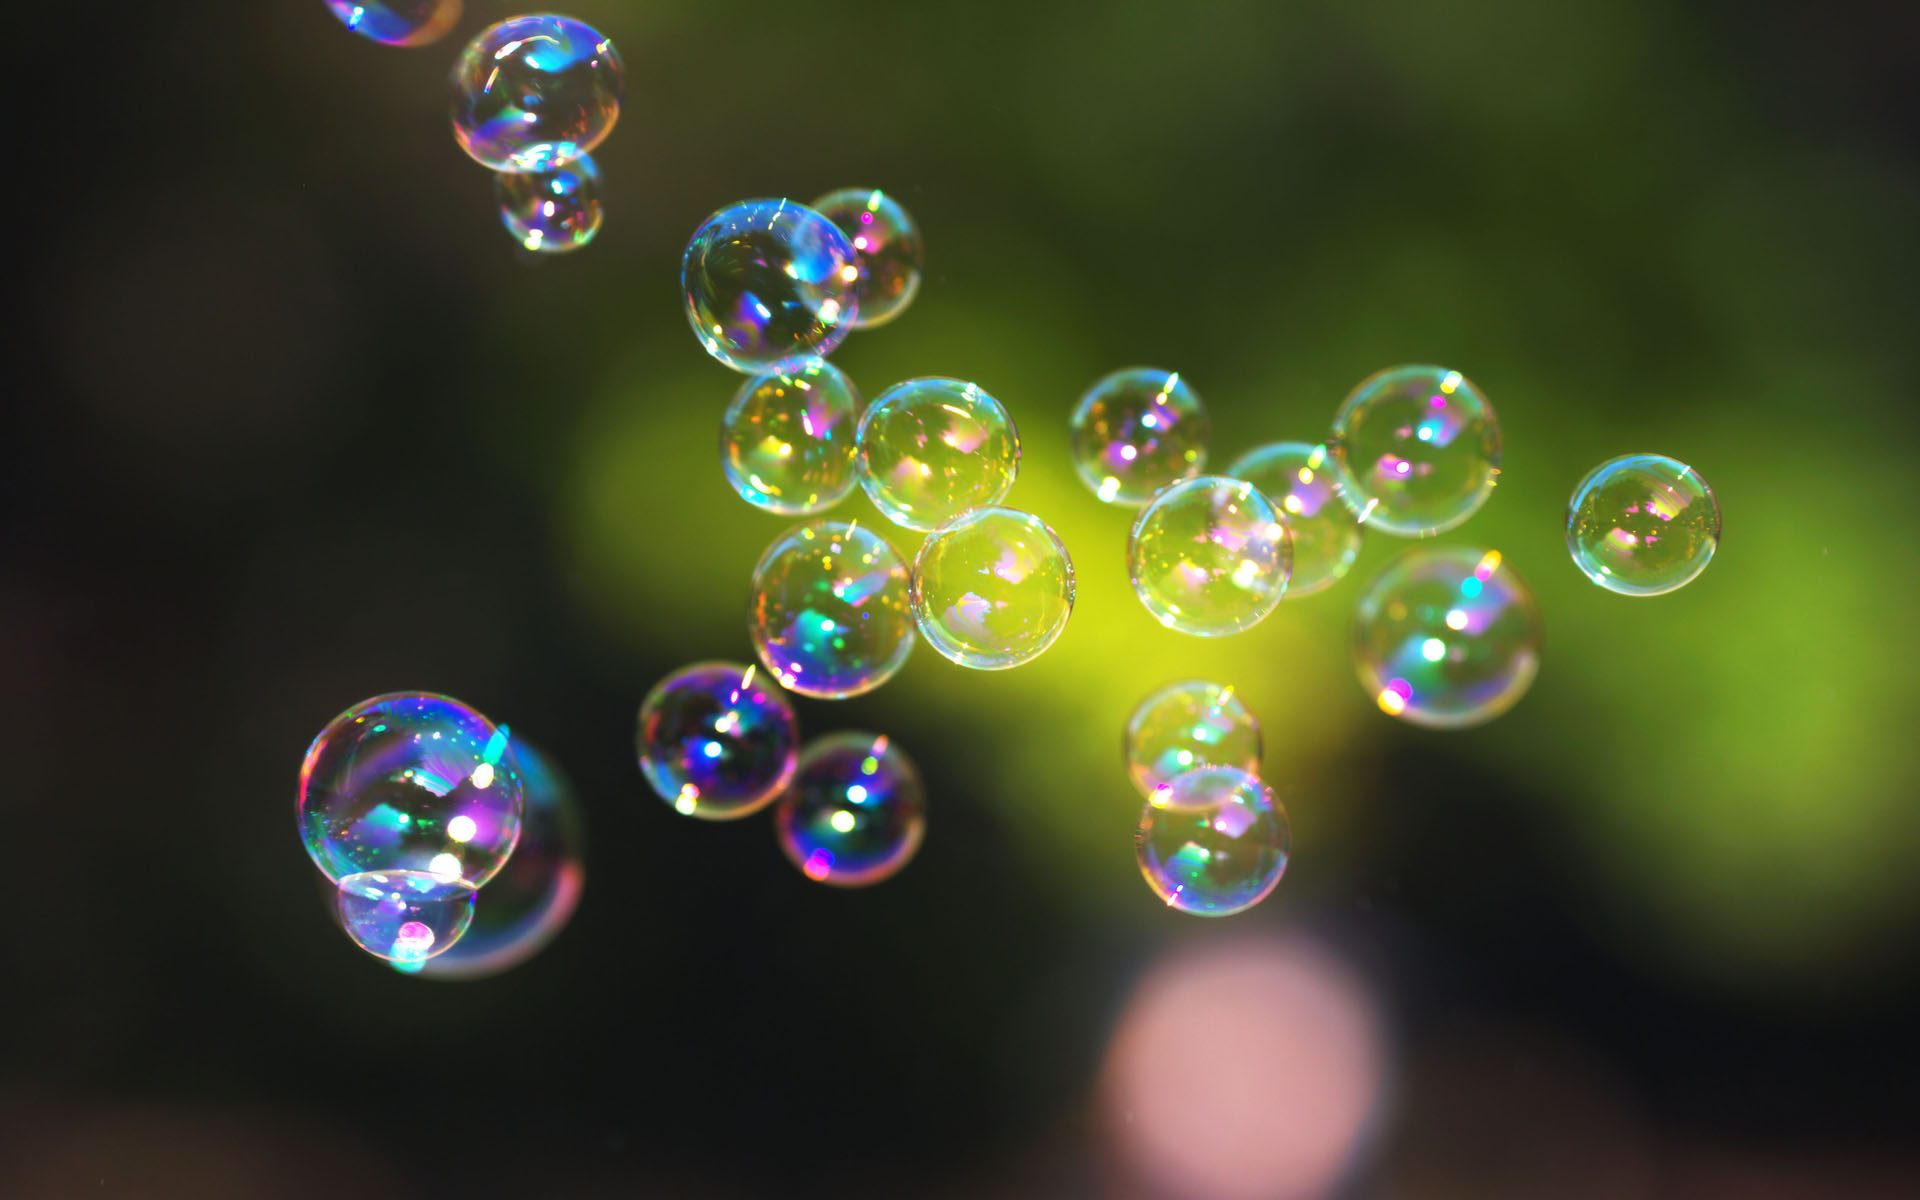 As I set the dish washing soap down on the counter, a small cluster of bubbles burst from the open top. Playfully they danced upward in front of the window.